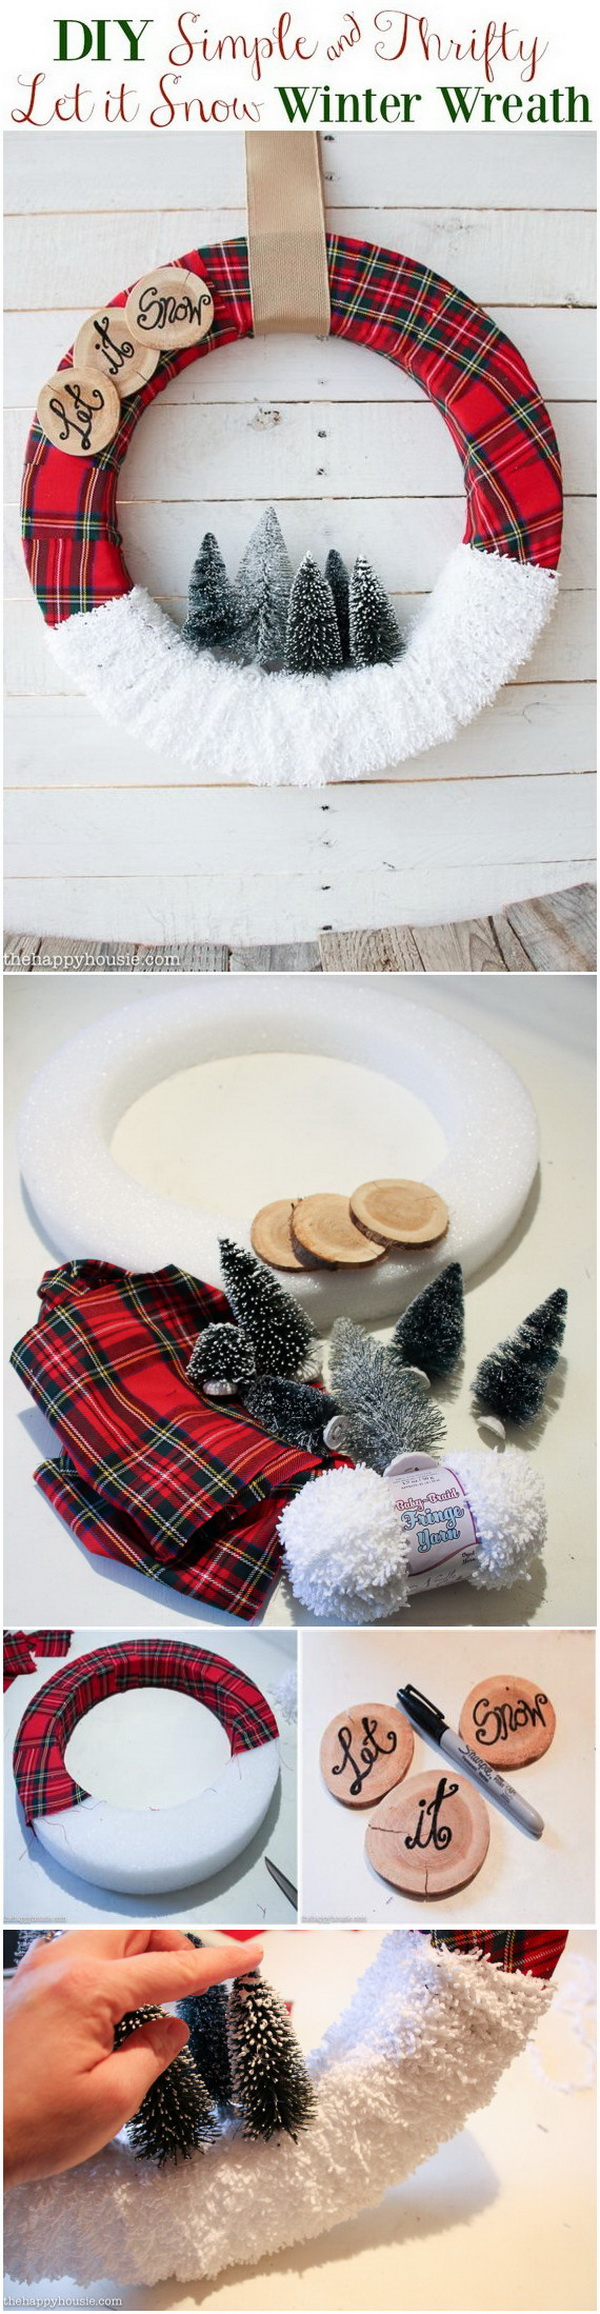 """Let It Snow"" Christmas Wreath."